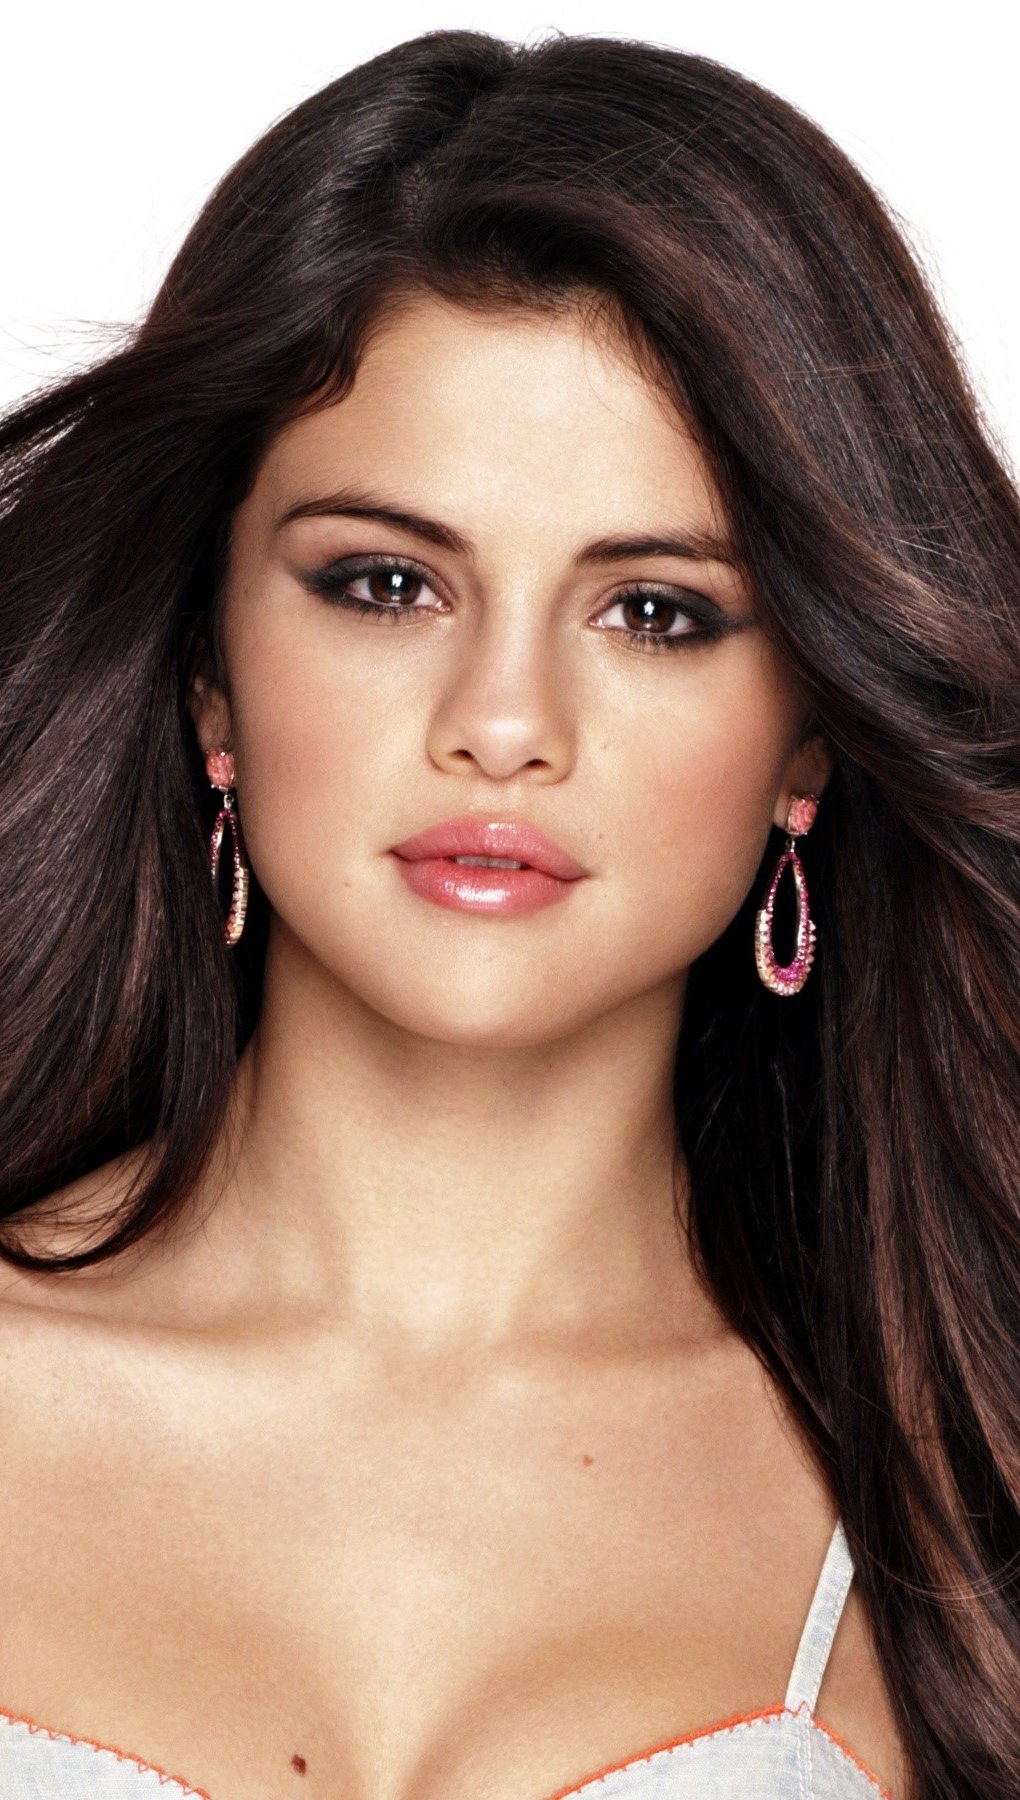 Wallpaper Selena Gomez with straight hair Vertical